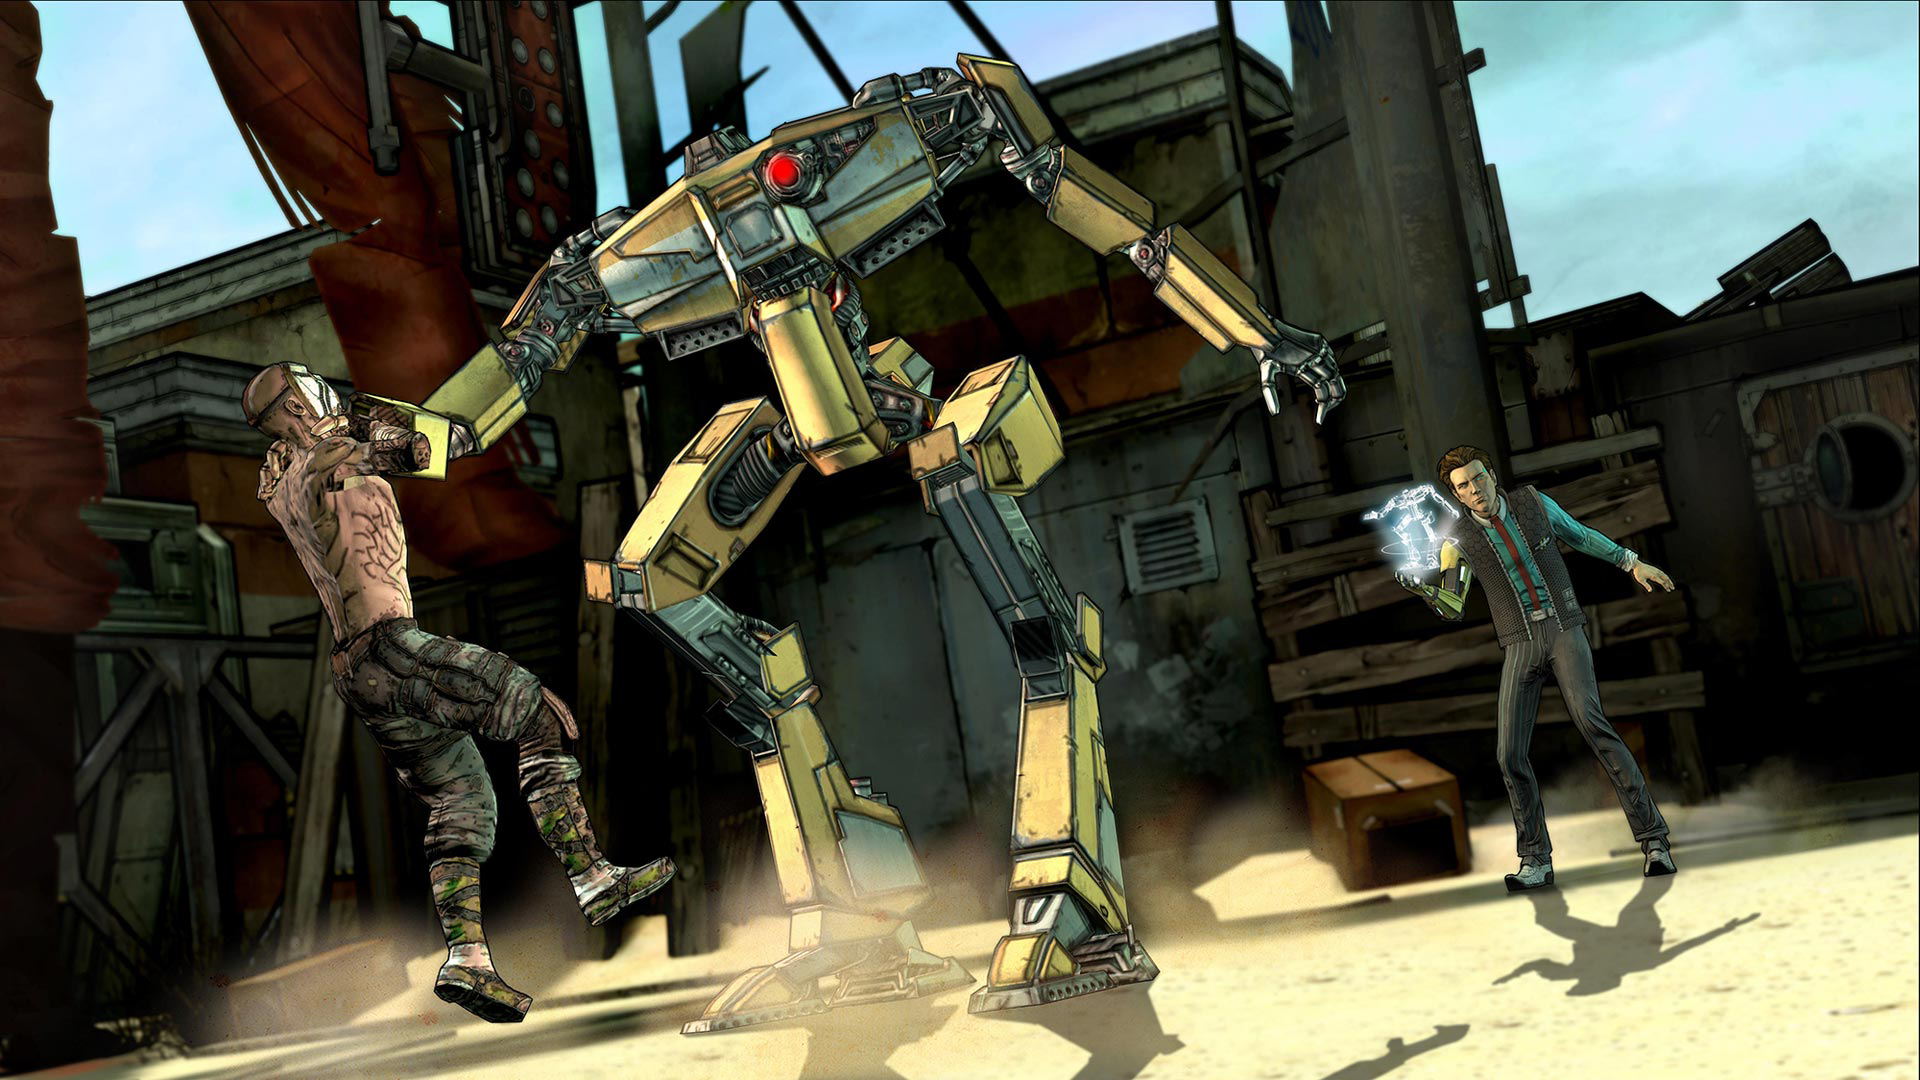 Tales from the Borderlands screenshot #18